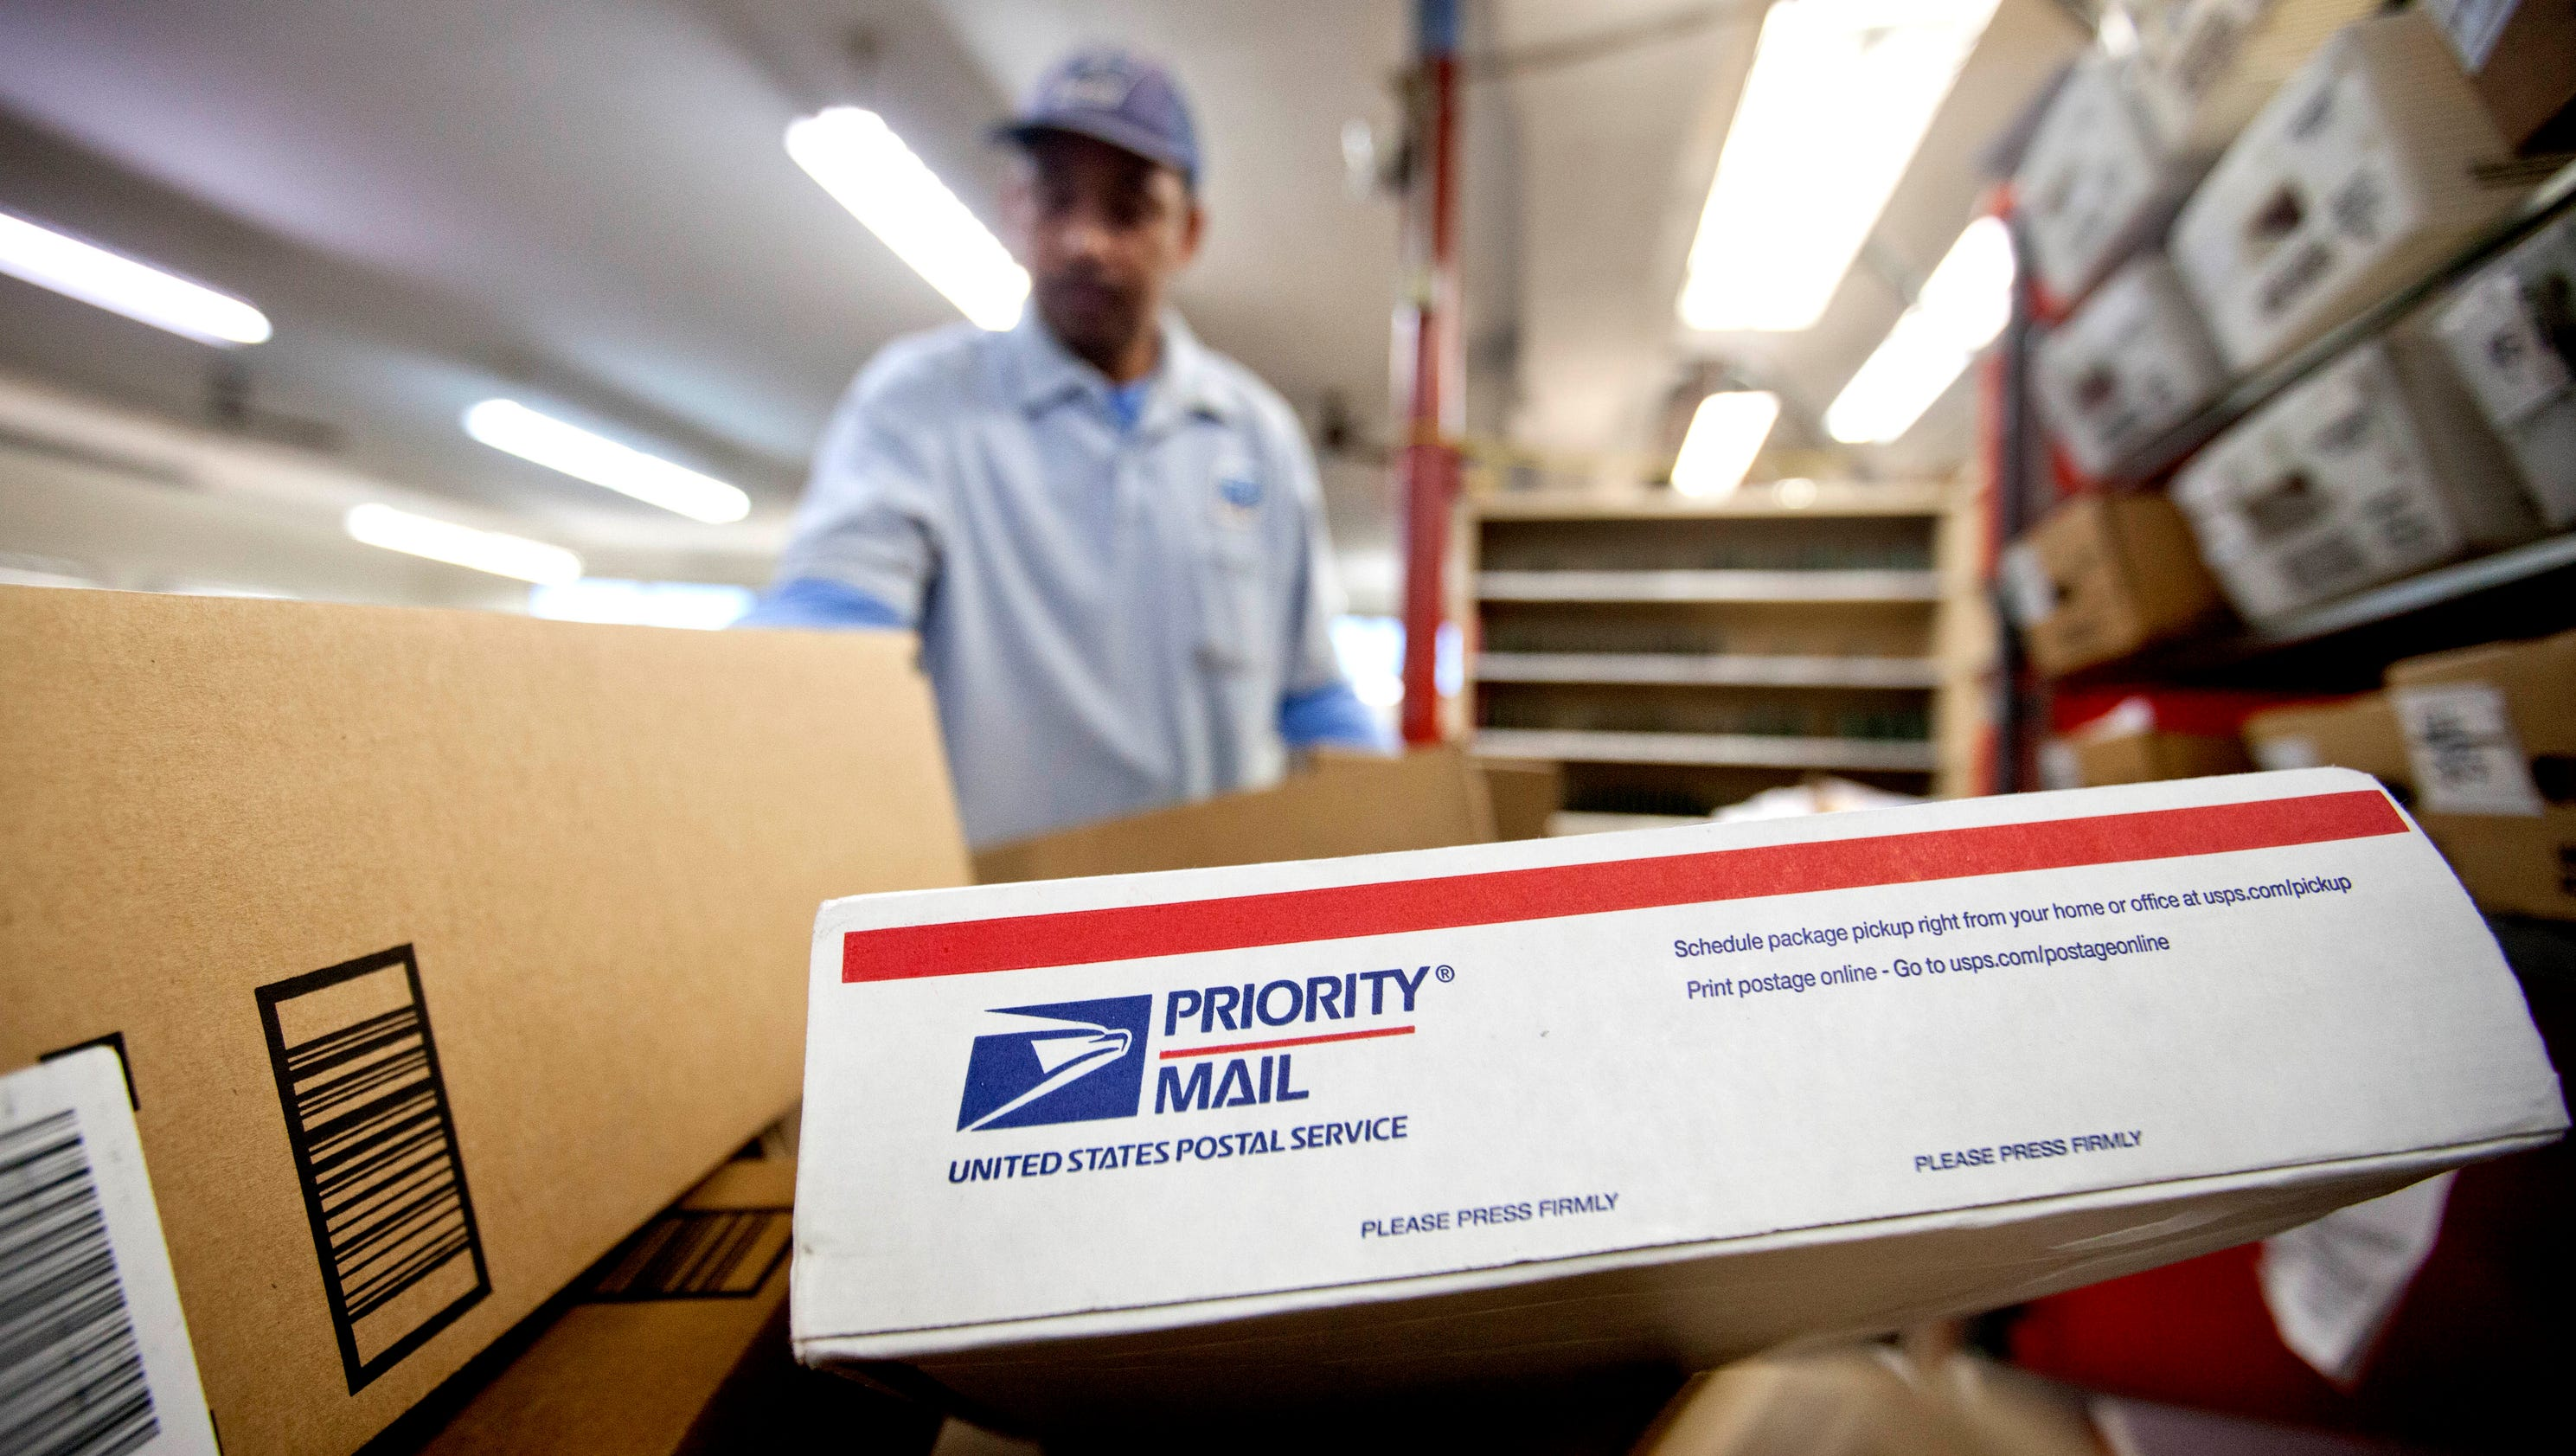 Priority Mail Express Sunday/Holiday Delivery; Express Mail Sunday/Holiday Delivery List Instructions; Contact Information: Priority Mail Express Sunday/Holiday Delivery; Email: ribbsfeedback@distrib-wq9rfuqq.tk; Page updated: 01/05/